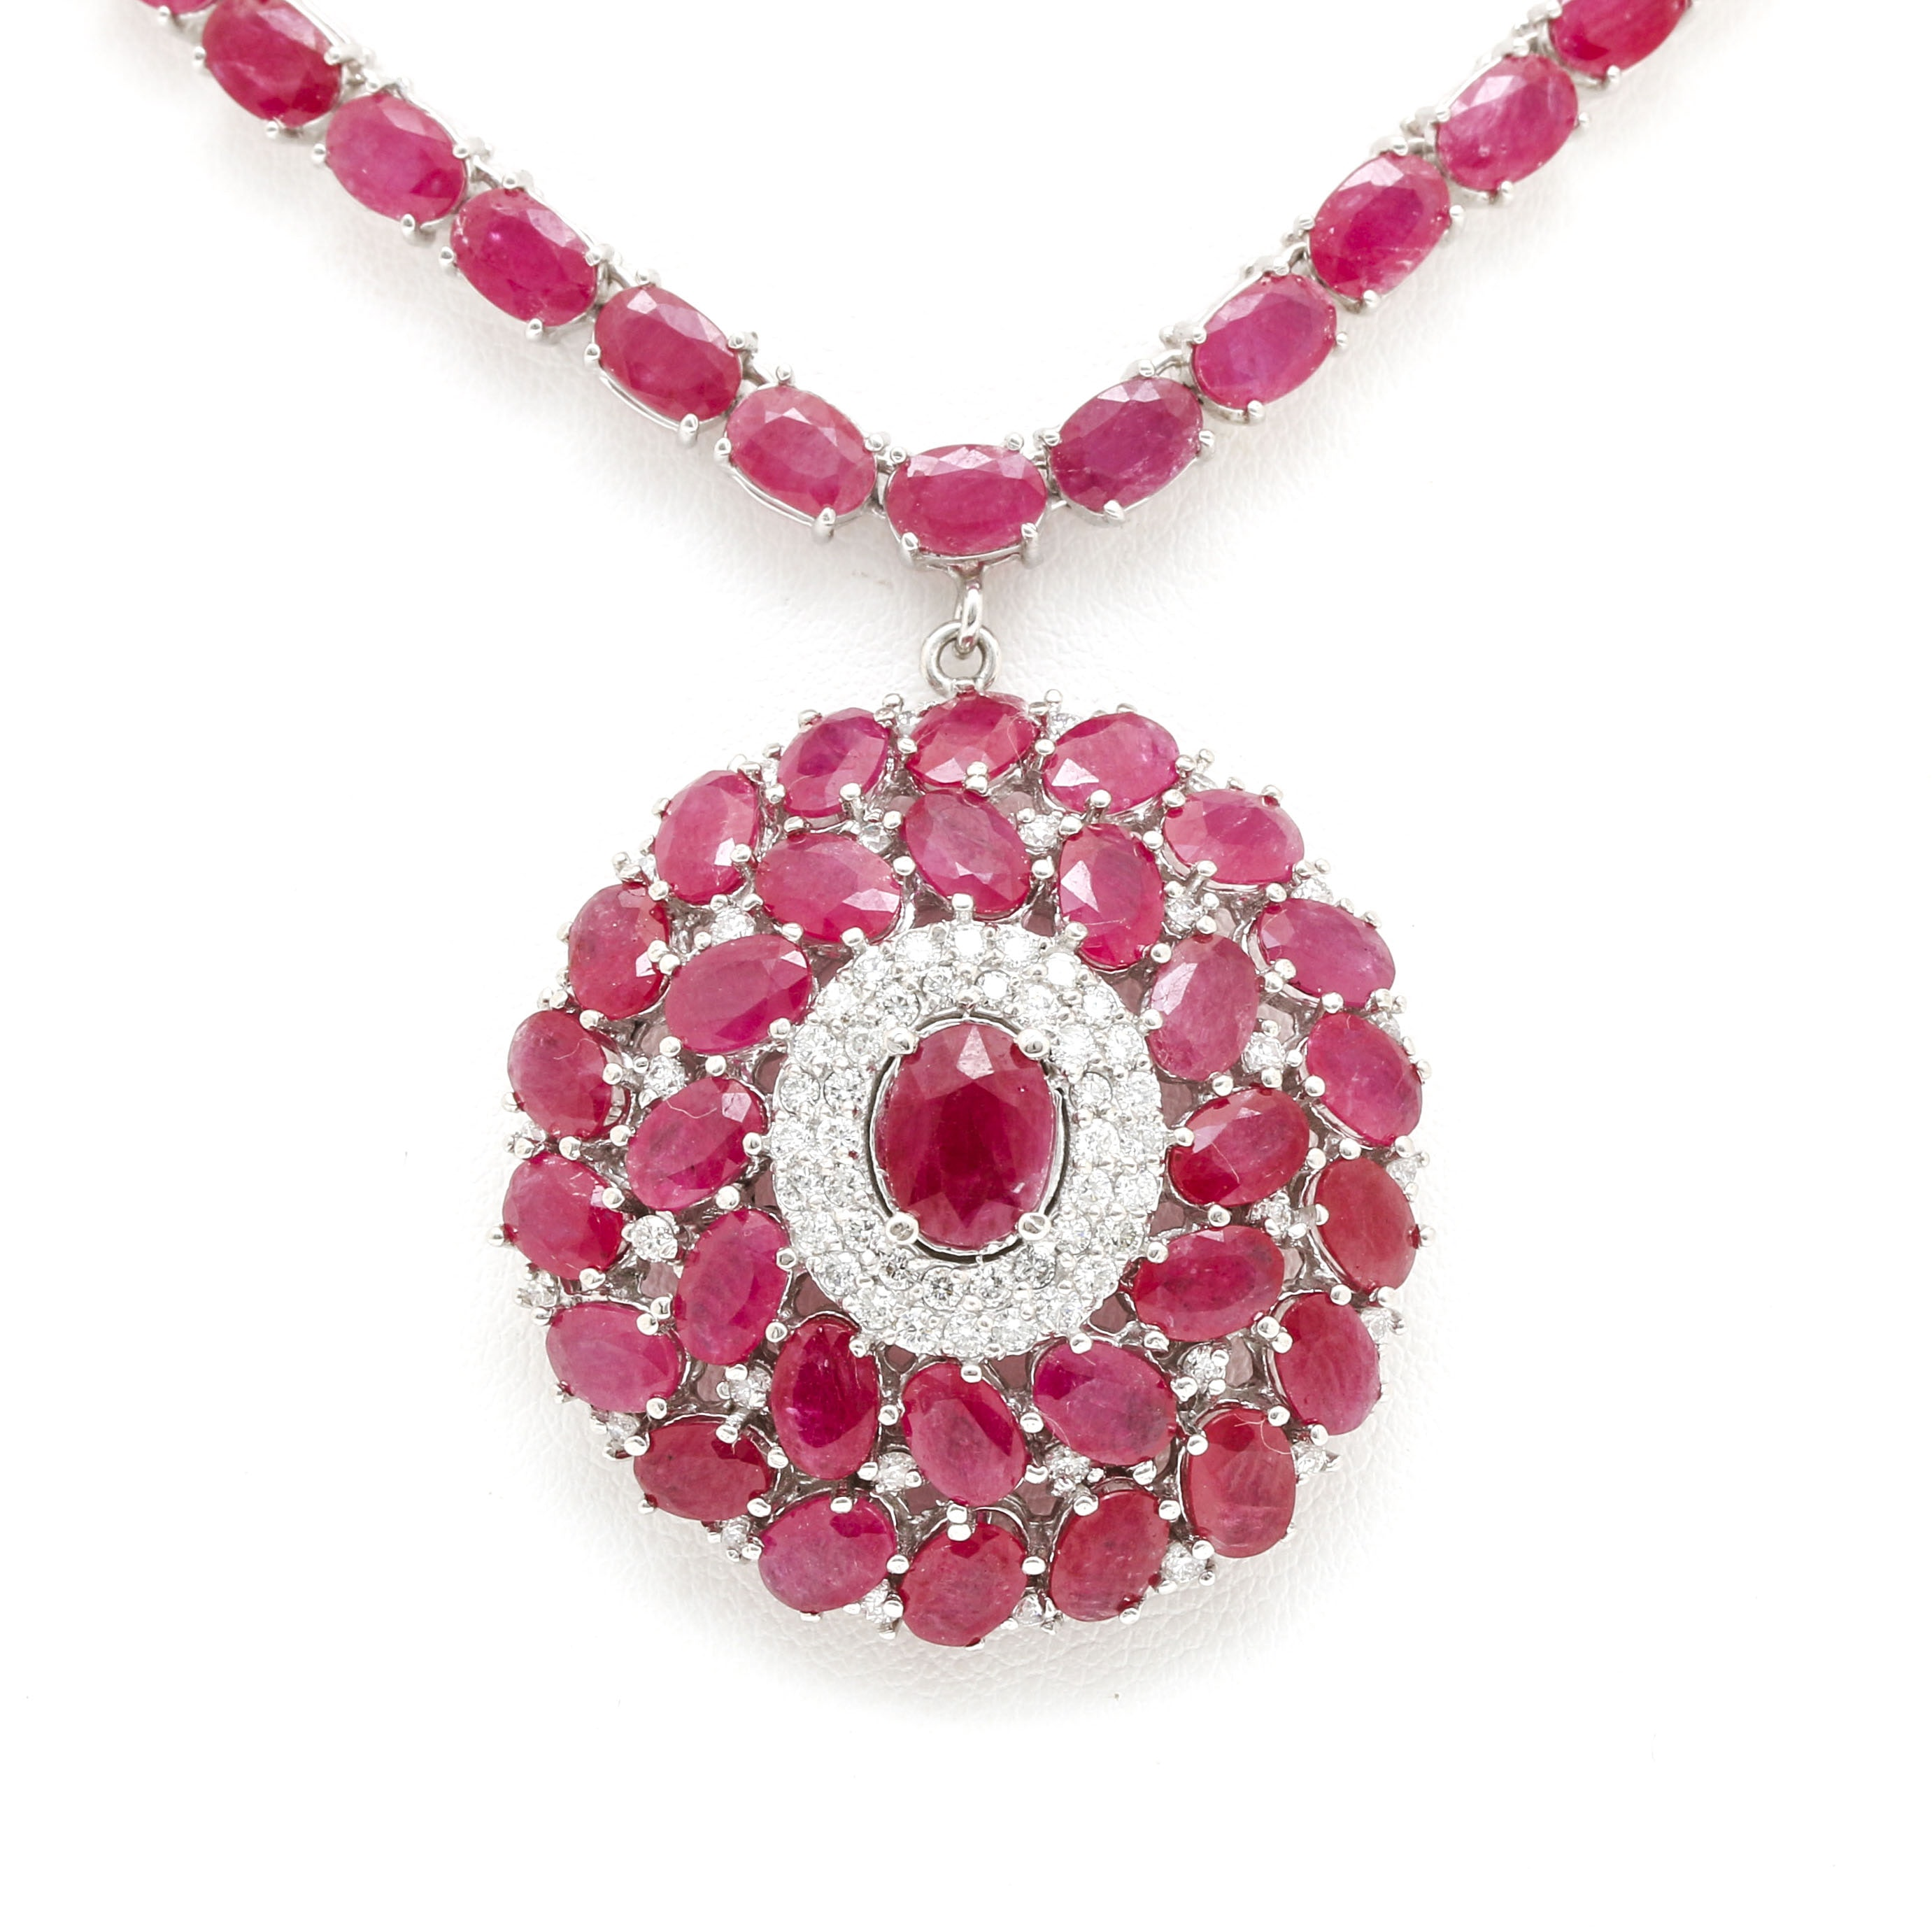 14K White Gold 44.54 CTW Ruby and 1.26 CTW Diamond Necklace